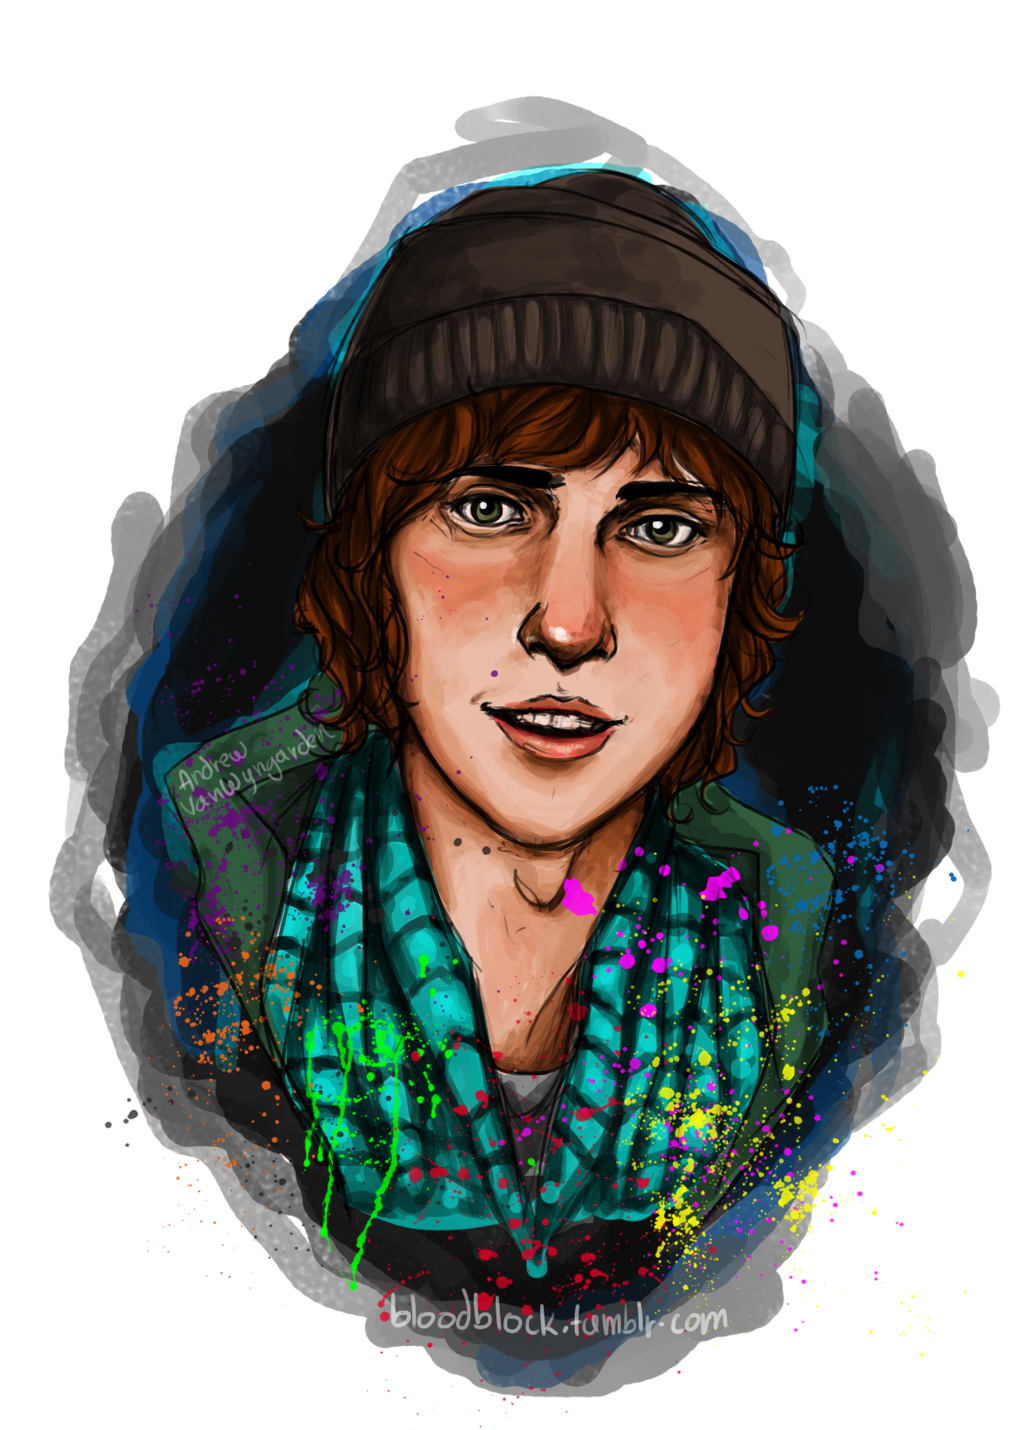 Andrew VanWyngarden by Unsilence Andrew VanWyngarden by Unsilence - andrew_vanwyngarden_by_unsilence-d7afhi1